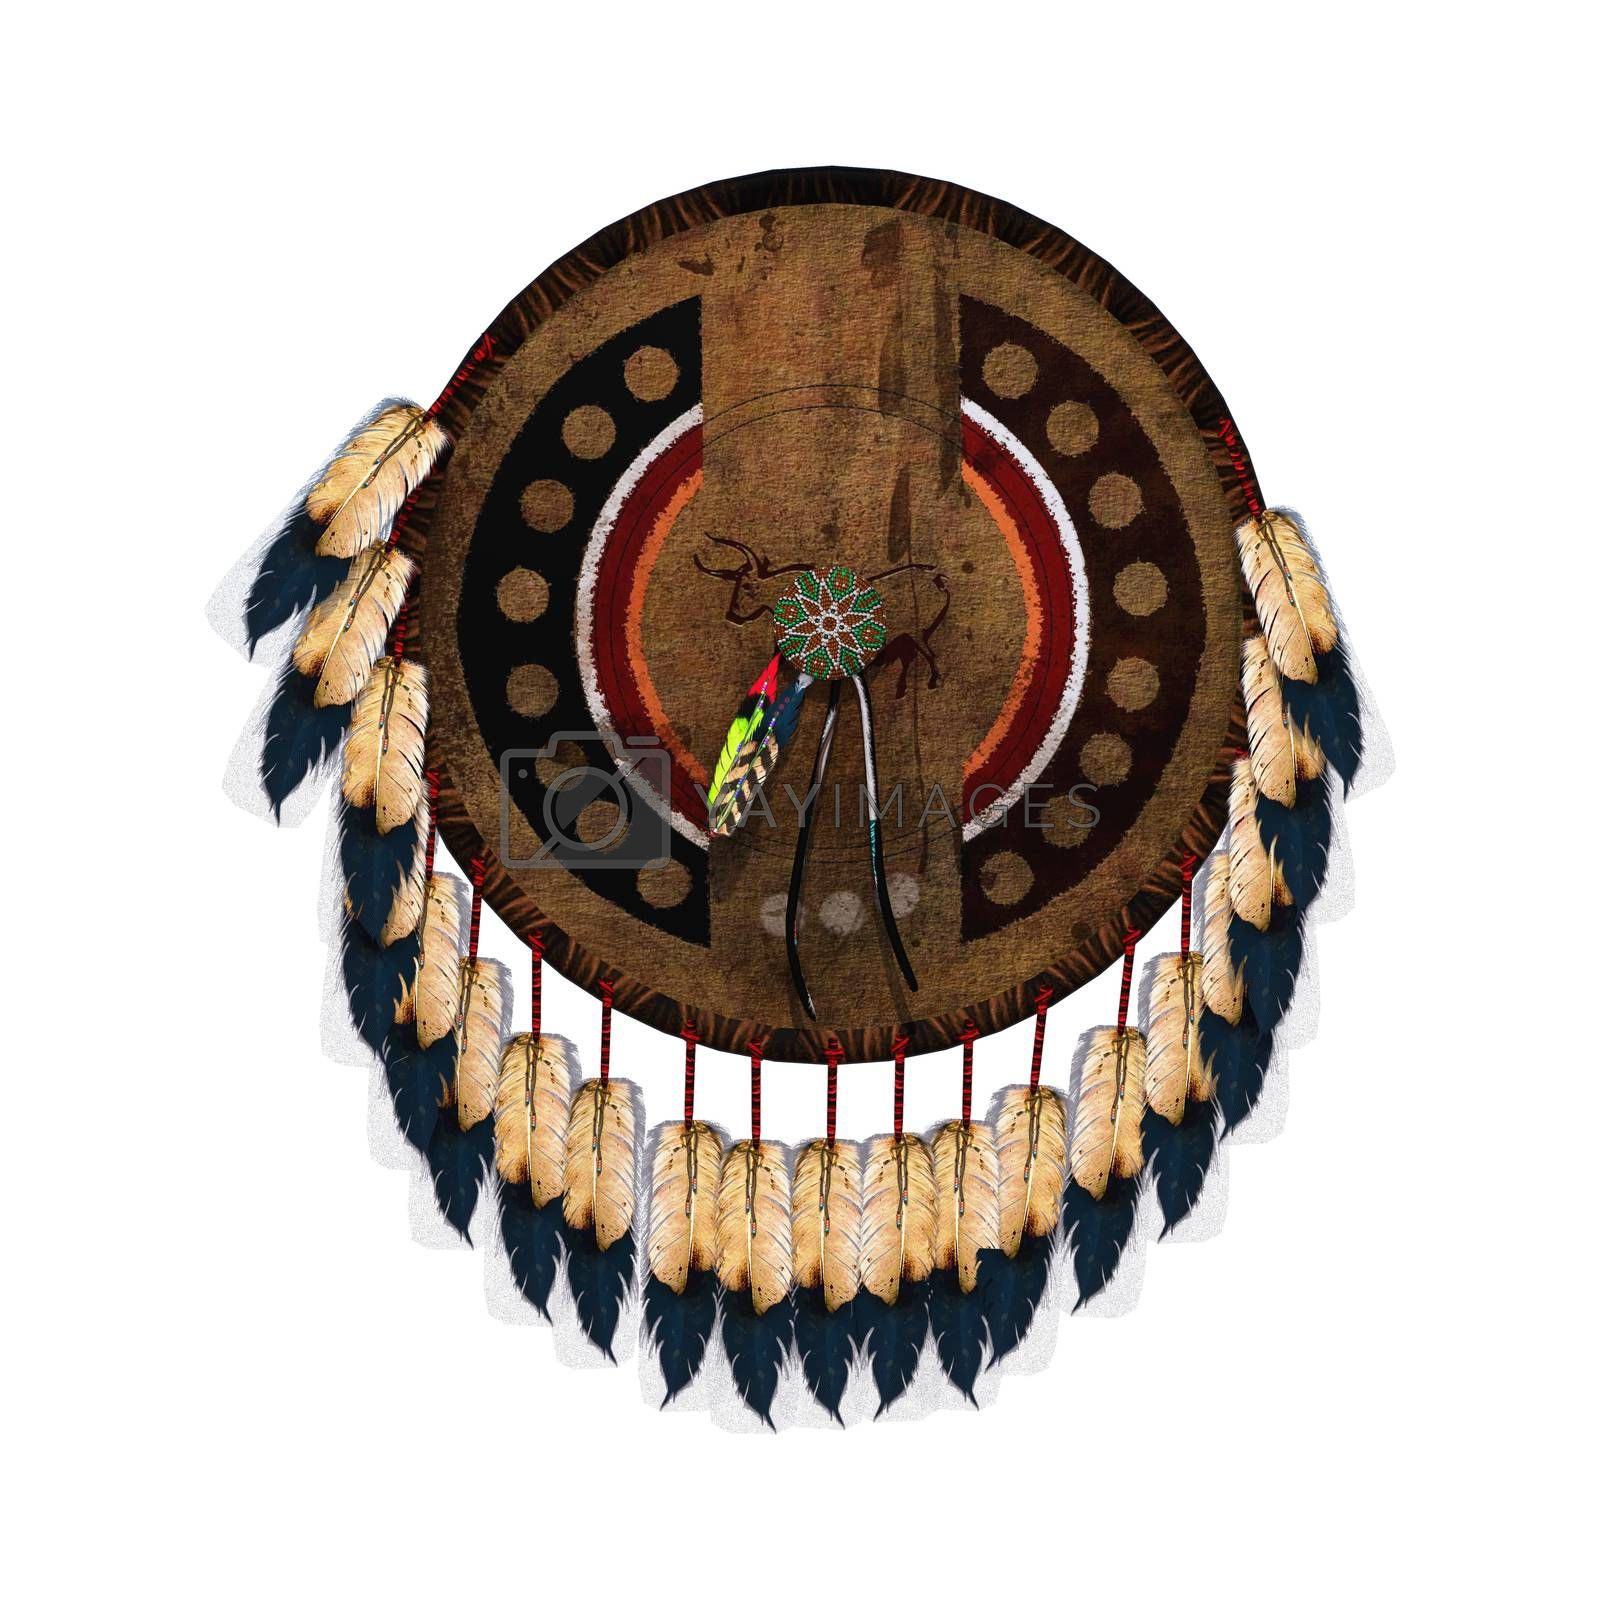 3D digital render of a native American shield isolated on white background